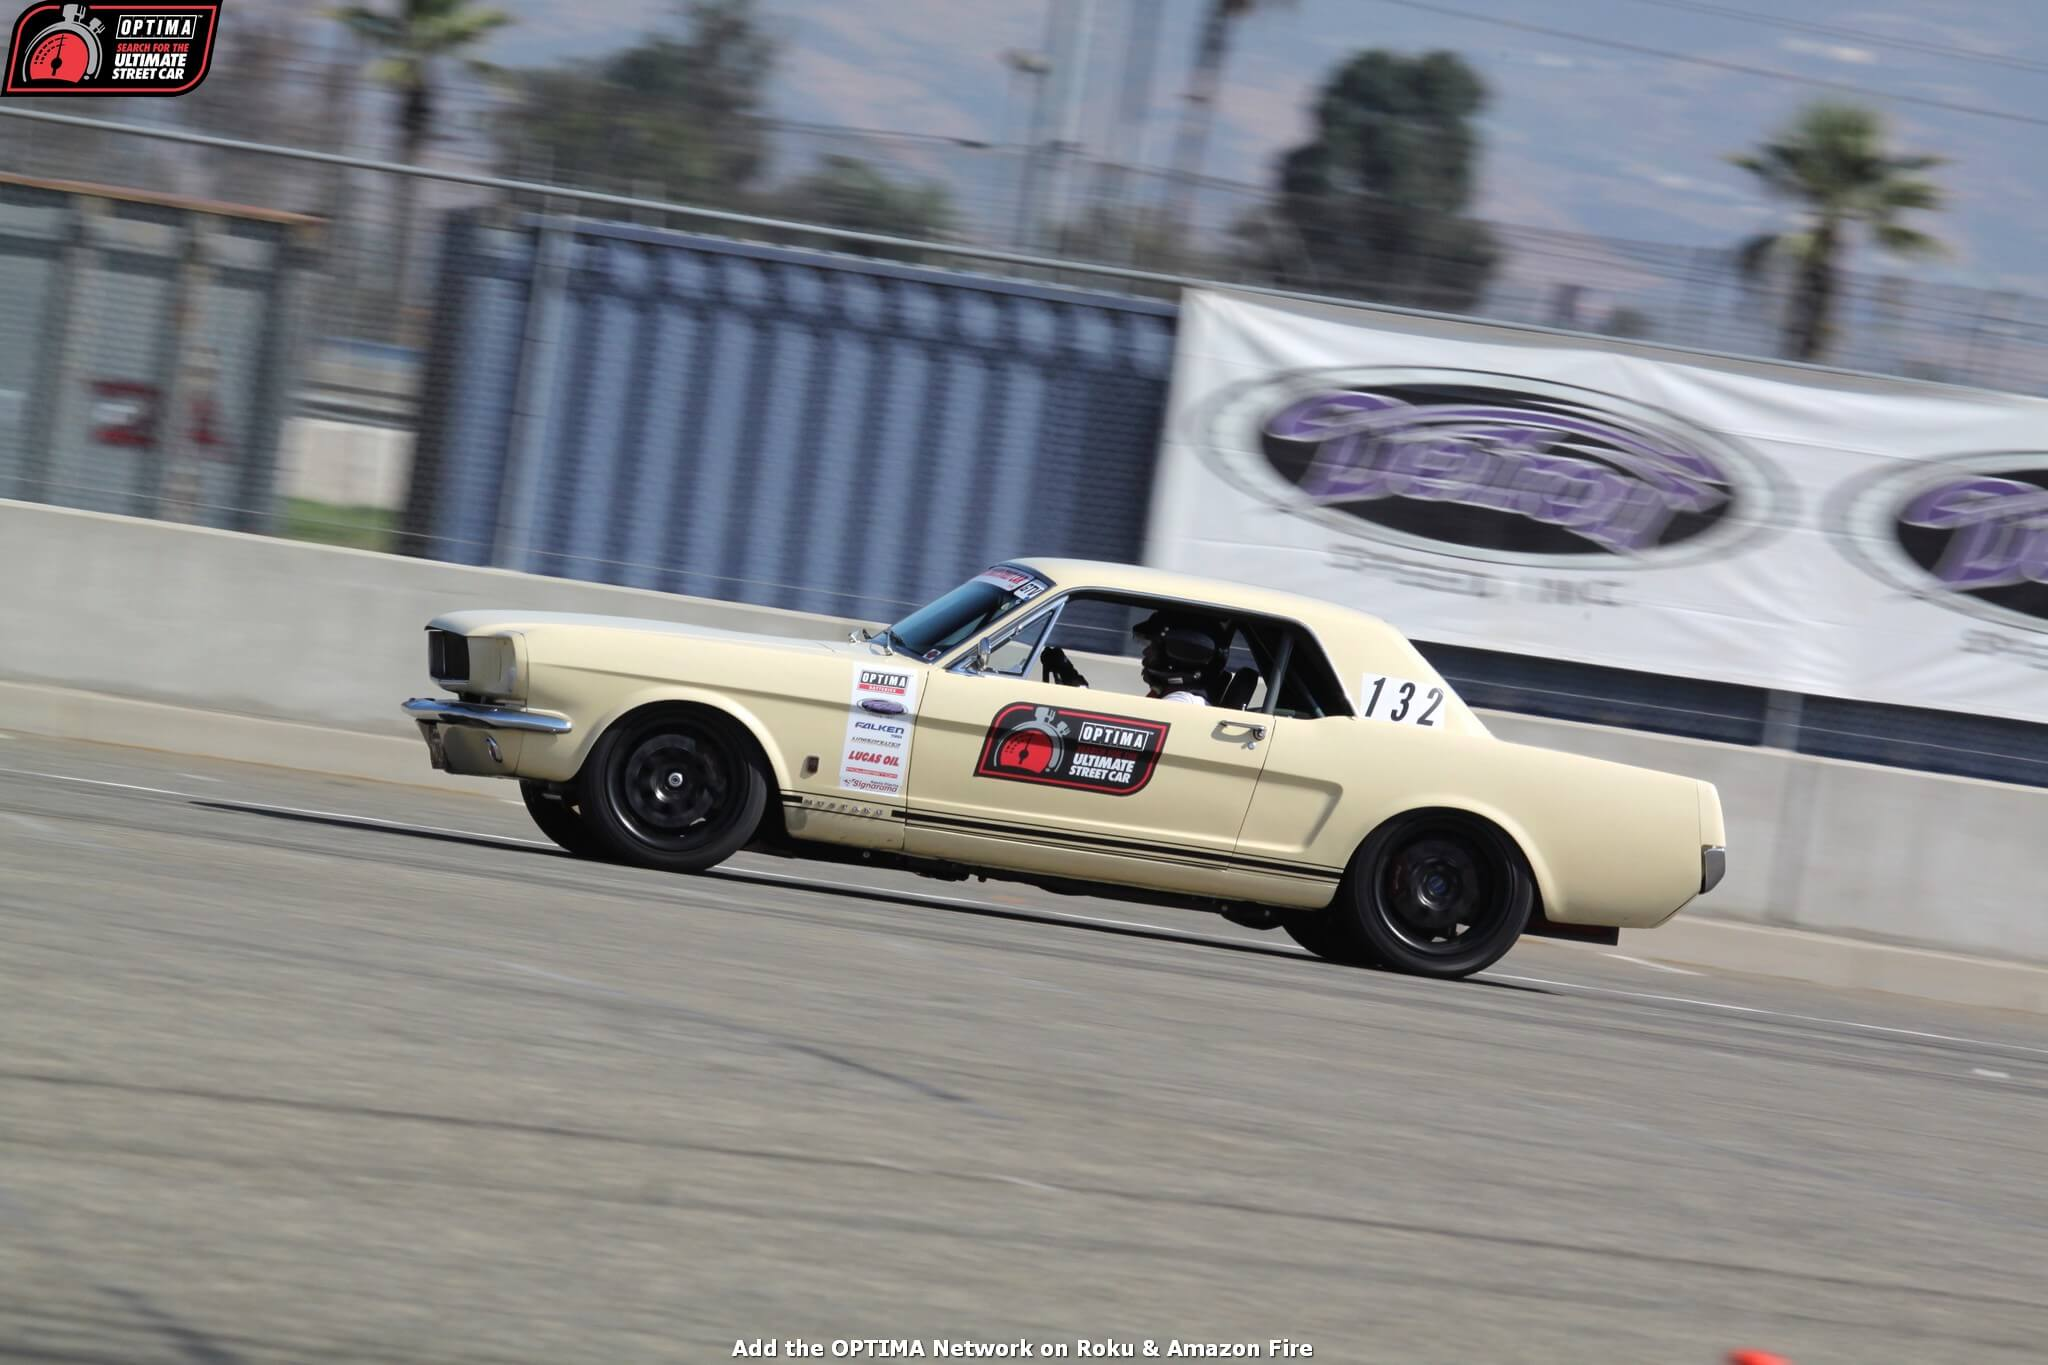 Mike-Fitzwater-1965-Ford-Mustang-DriveOPTIMA-Auto-Club-Speedway_75